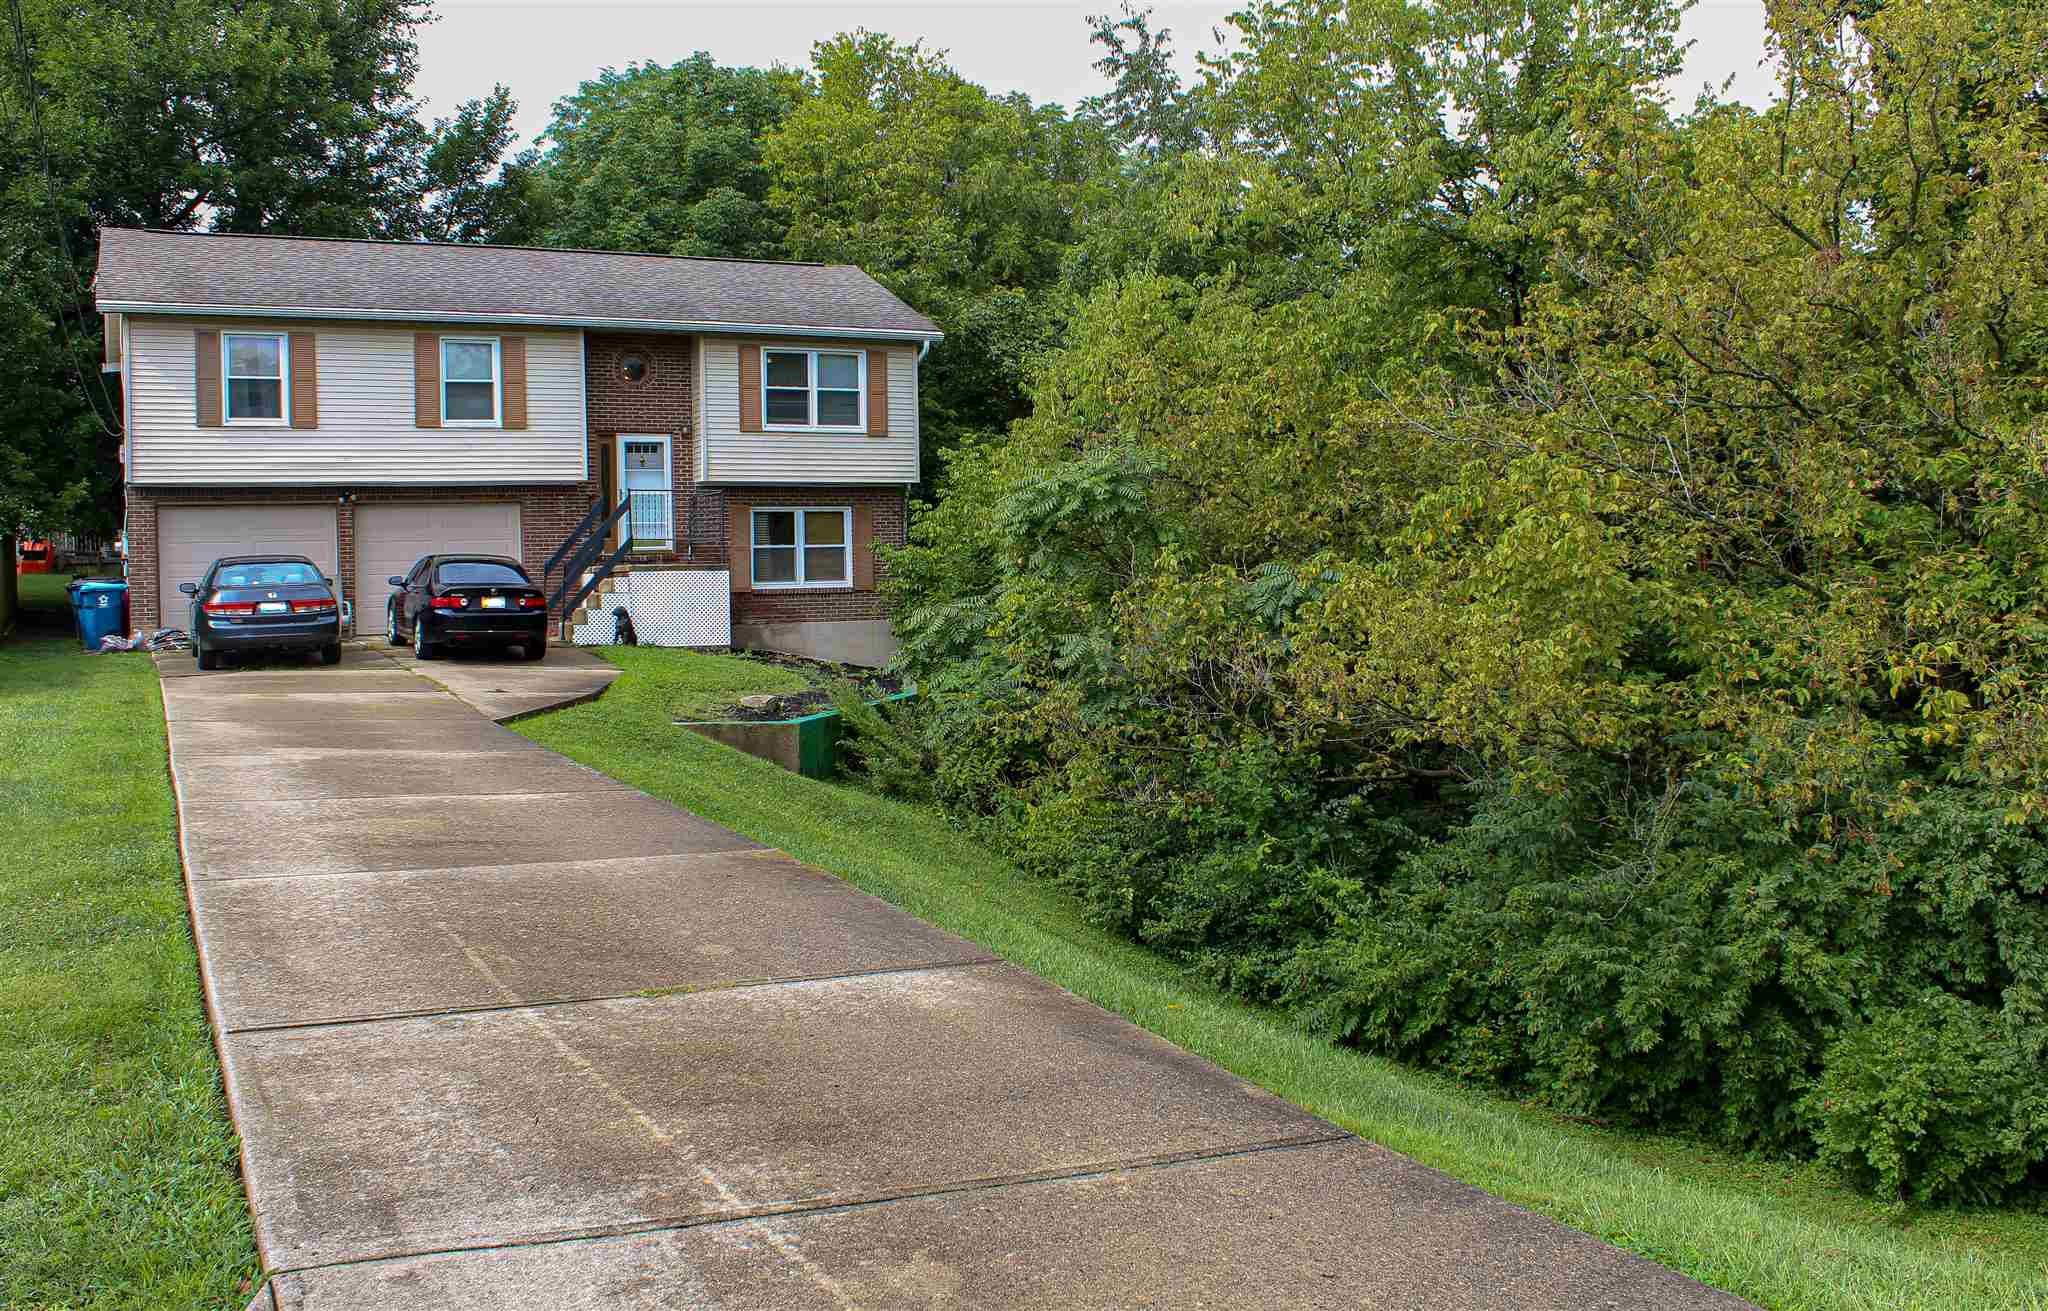 Photo 1 for 5129 Keavy Drive Taylor Mill, KY 41015